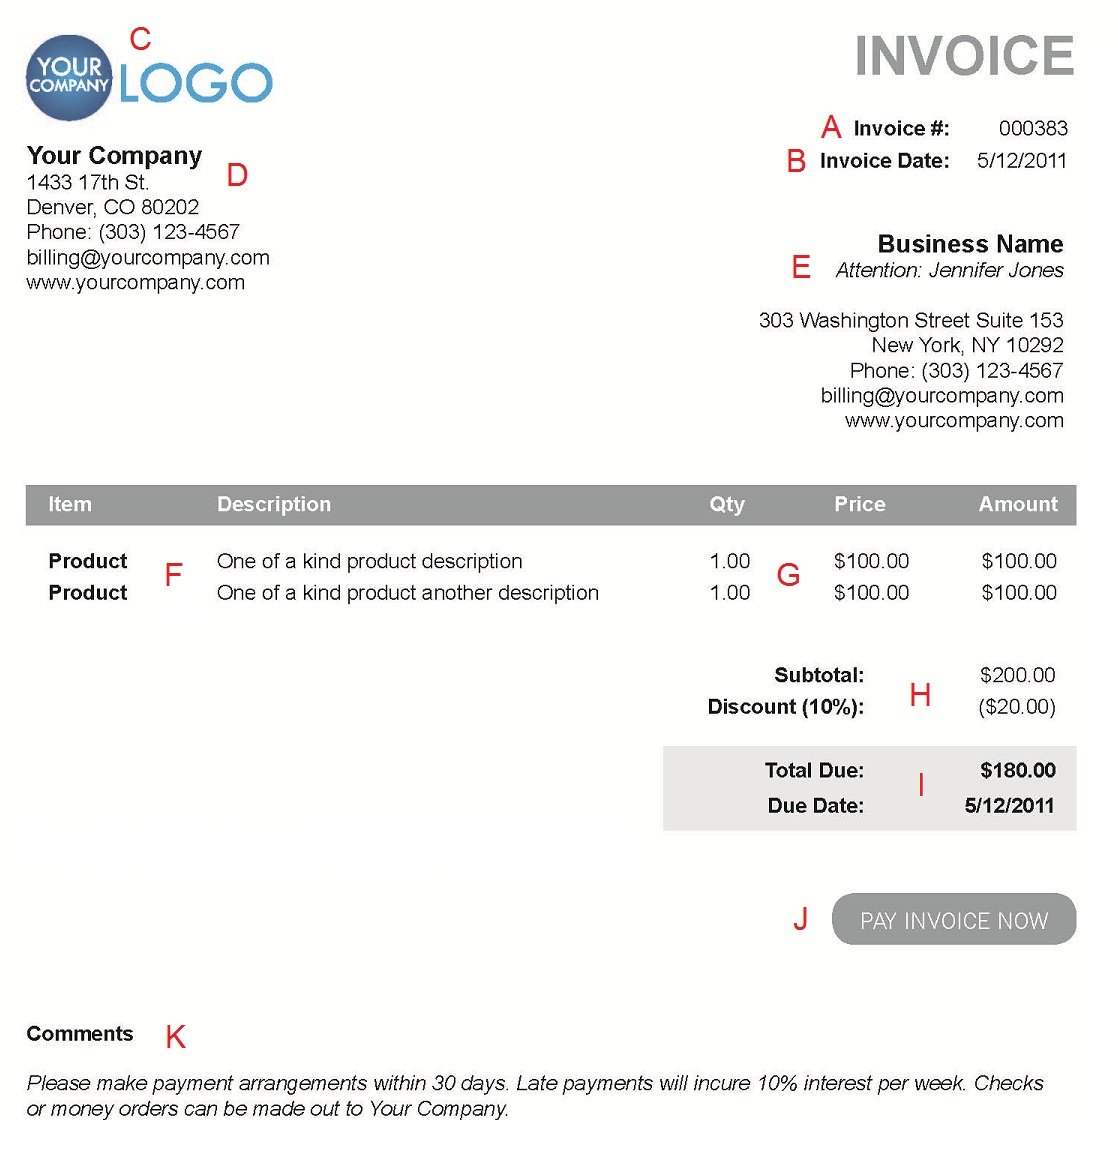 Weirdmailus  Picturesque The  Different Sections Of An Electronic Payment Invoice With Lovable A  With Agreeable Quotation Purchase Order Invoice Also Cla  Invoice Price In Addition Invoice Collection Service And Invoice Format In Excel As Well As Invoice Discounting Jobs Additionally Self Employment Invoice From Paysimplecom With Weirdmailus  Lovable The  Different Sections Of An Electronic Payment Invoice With Agreeable A  And Picturesque Quotation Purchase Order Invoice Also Cla  Invoice Price In Addition Invoice Collection Service From Paysimplecom